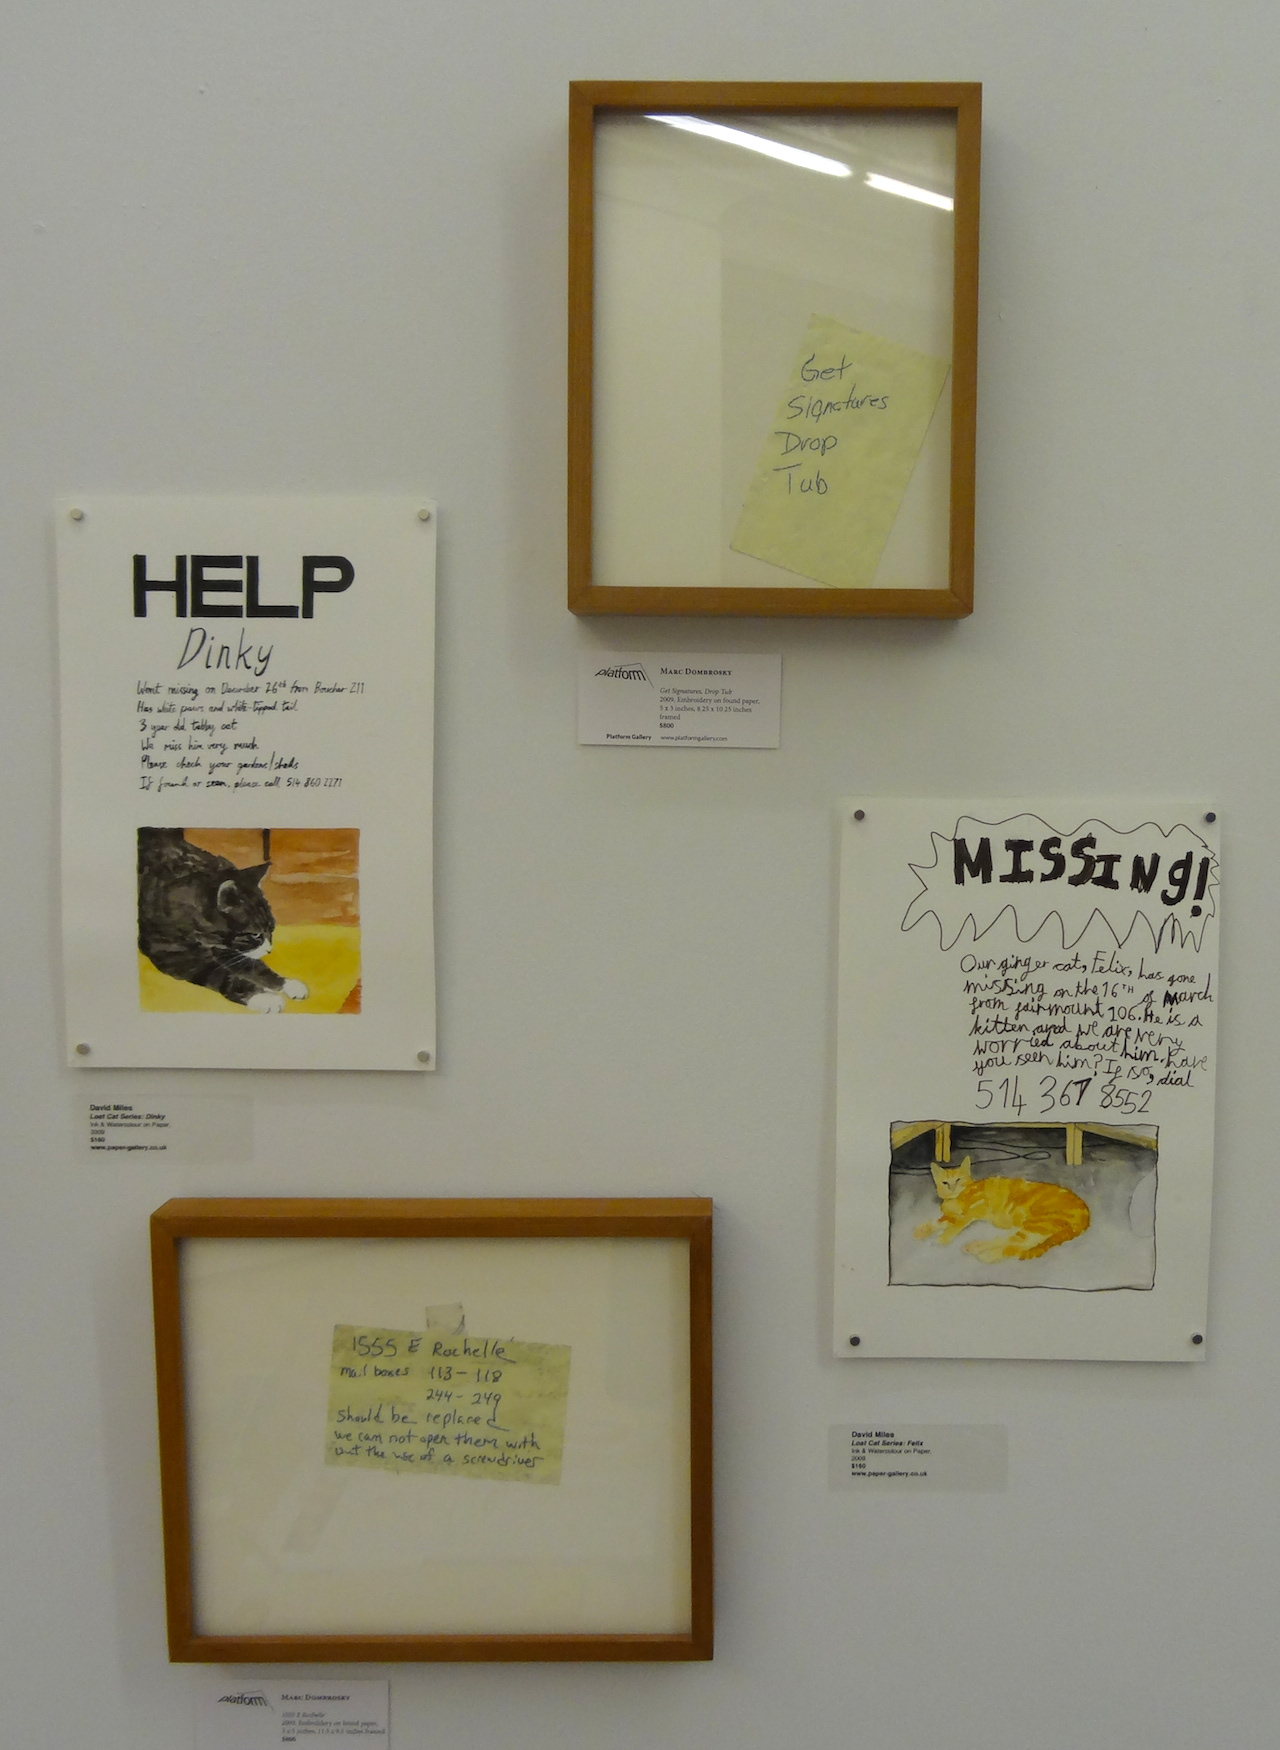 Embroidered notes by Marc Dombrosky, presented by Seattle's Platform Gallery, alongside paintings from David Milles's 'Lost Cat Series' presented by Manchester's Paper at Schema Projects